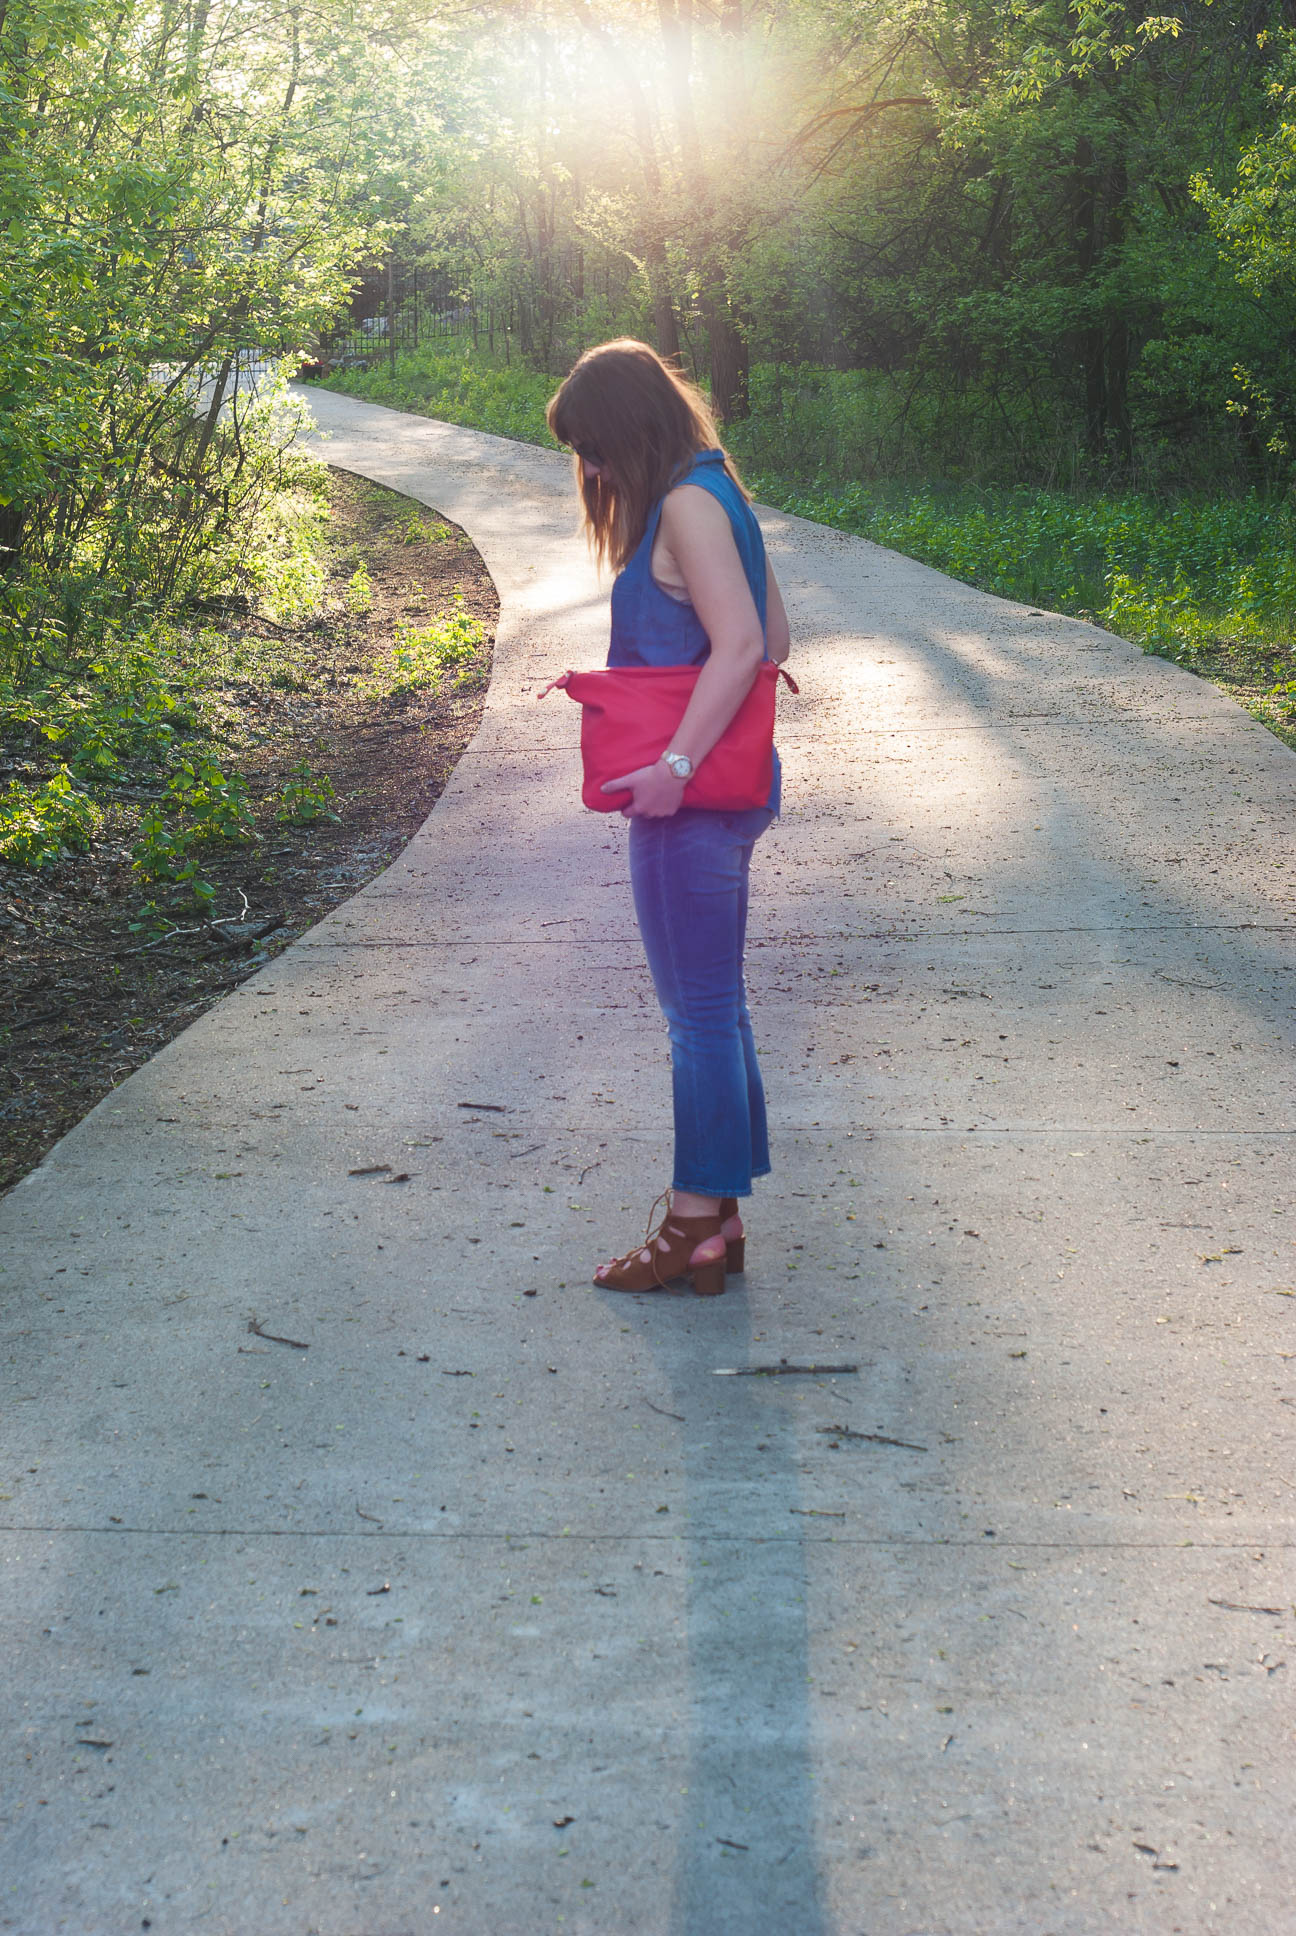 Karin Rambo of truncationblog.com shares why she Don't Feel Rushed to Have an Ethical Wardrobe